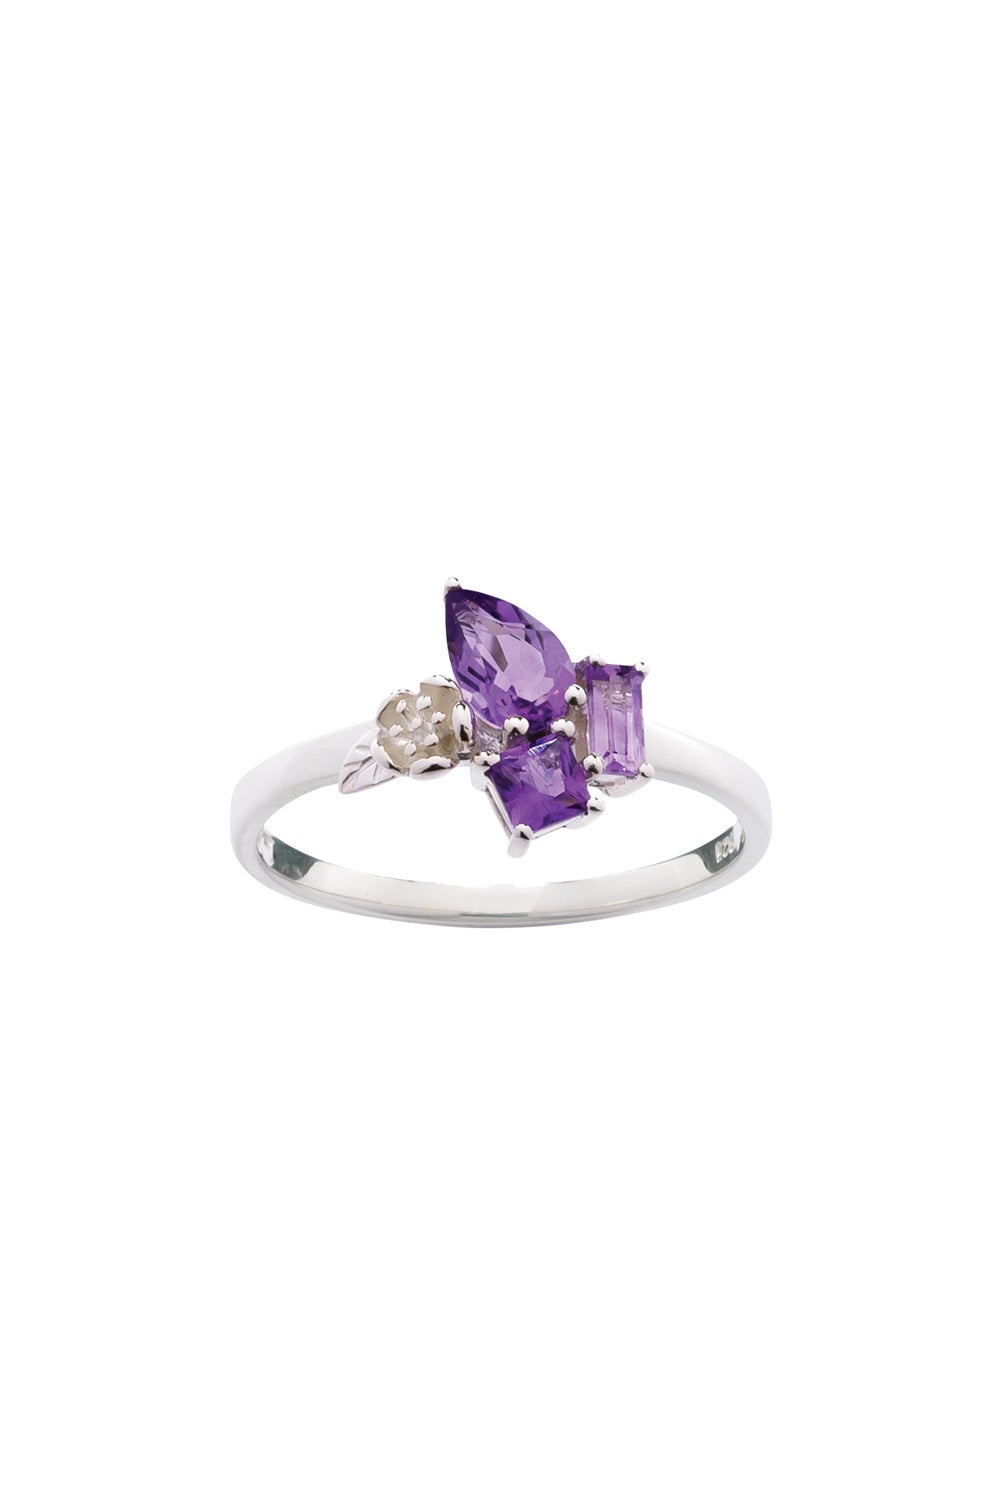 Rock Garden Mini Ring Silver & Amethyst